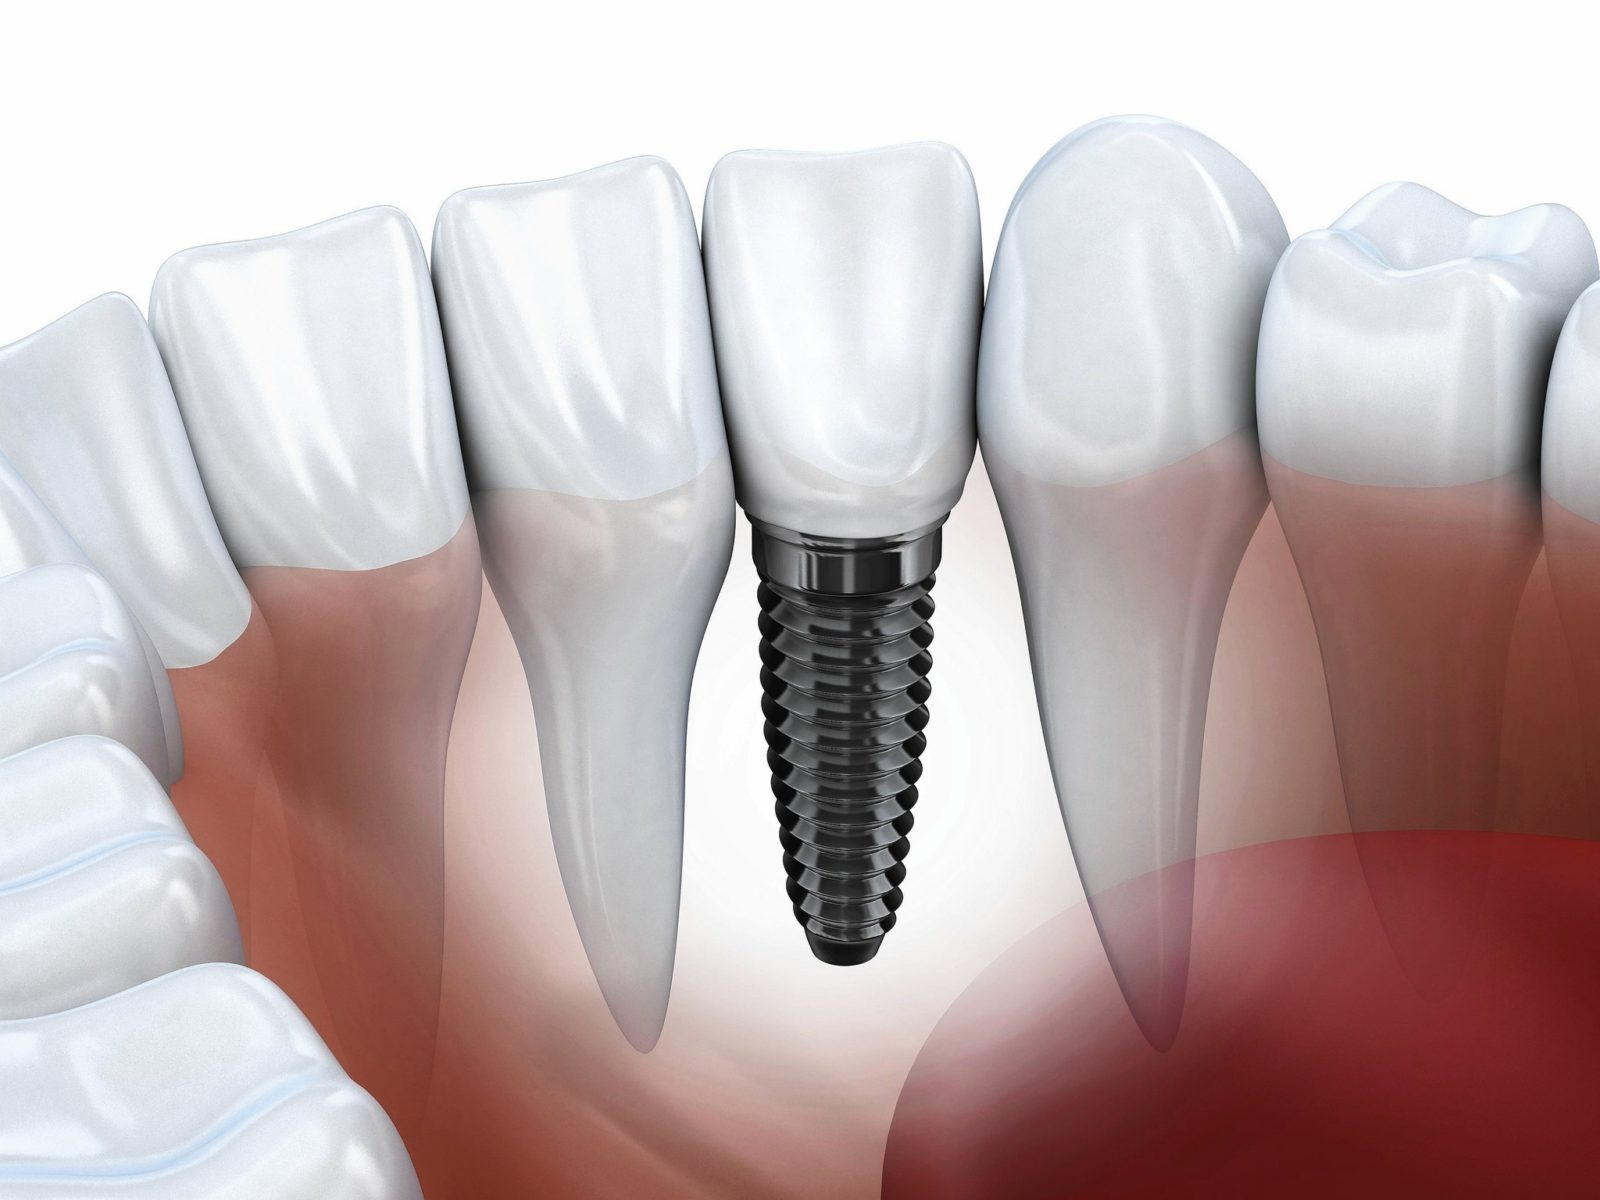 sc-hlth-0715-dental-implants-20150709